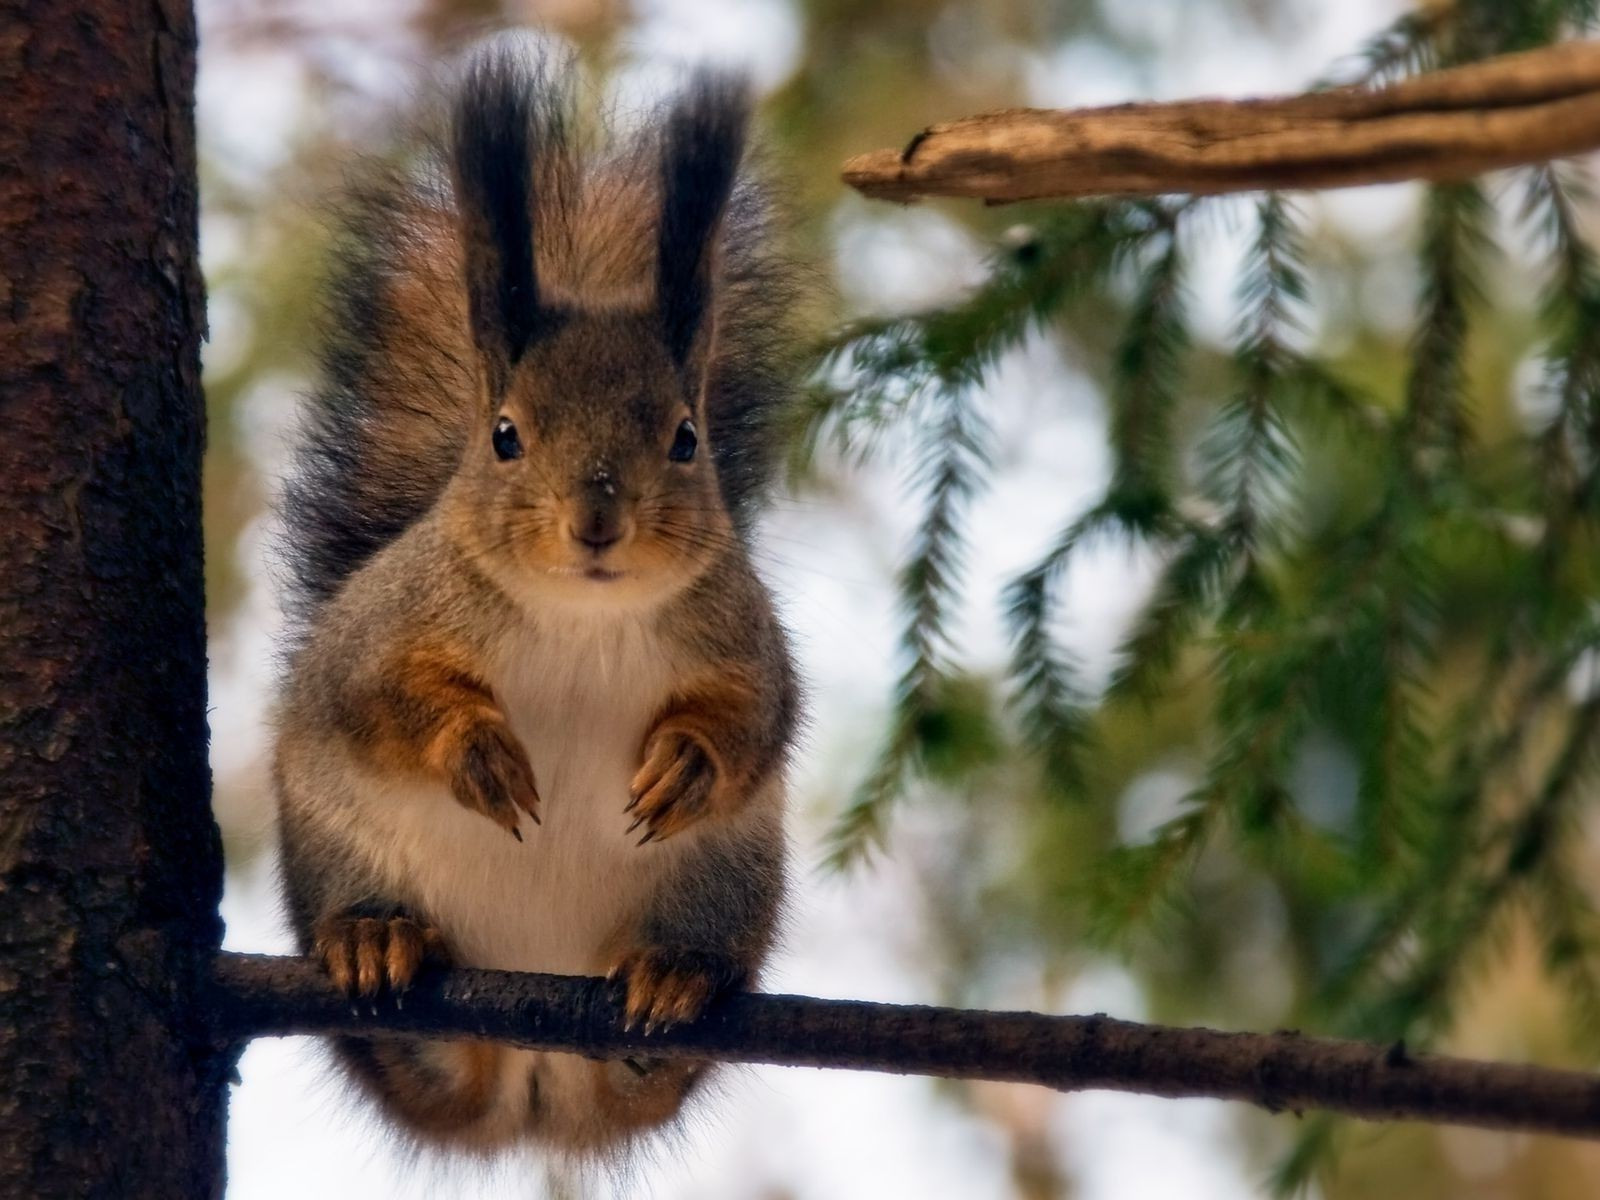 proteins tree mammal squirrel wildlife rodent nature portrait wood nut cute fur animal outdoors wild